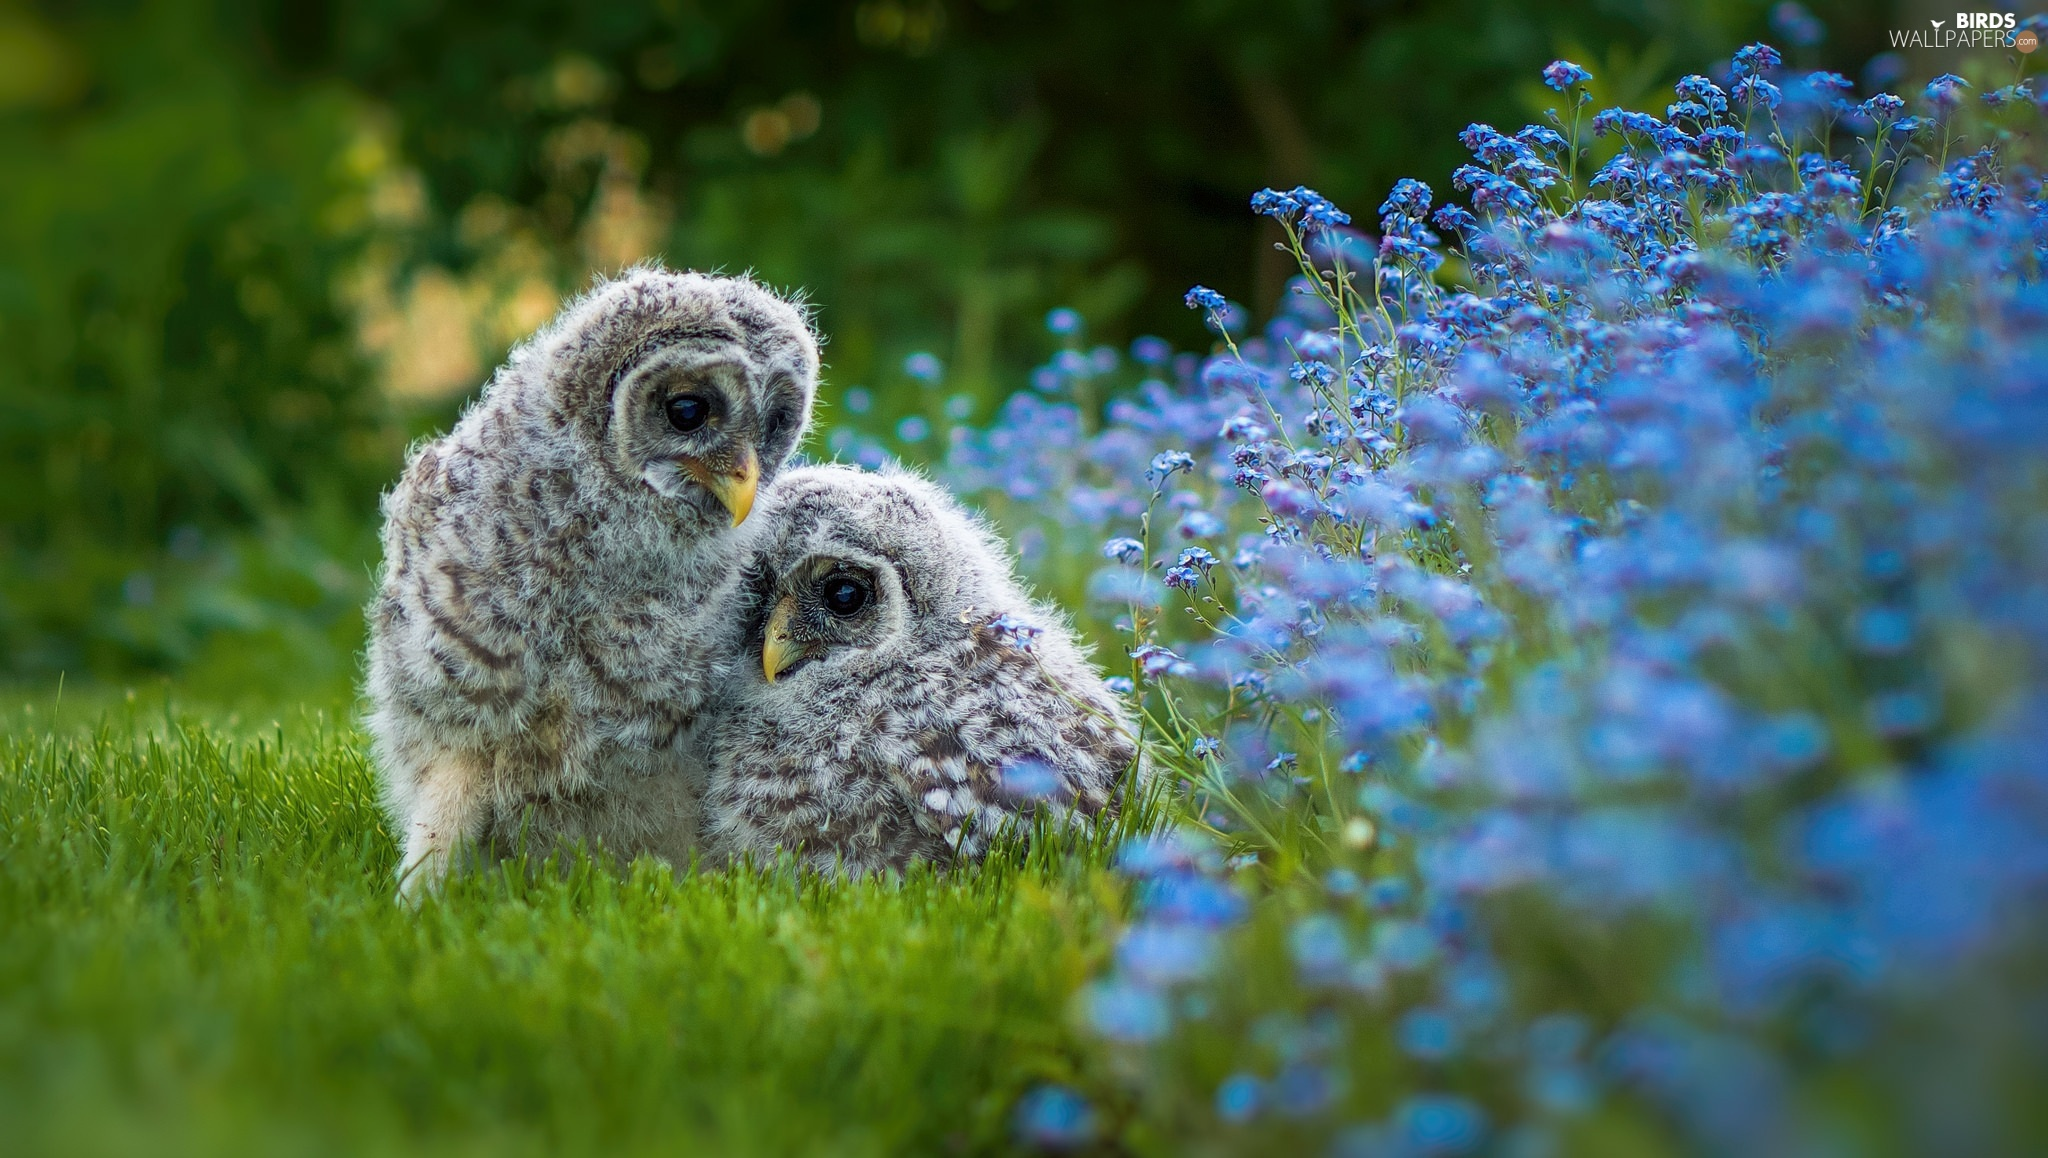 owls, birds, Flowers, grass, chick, Owls